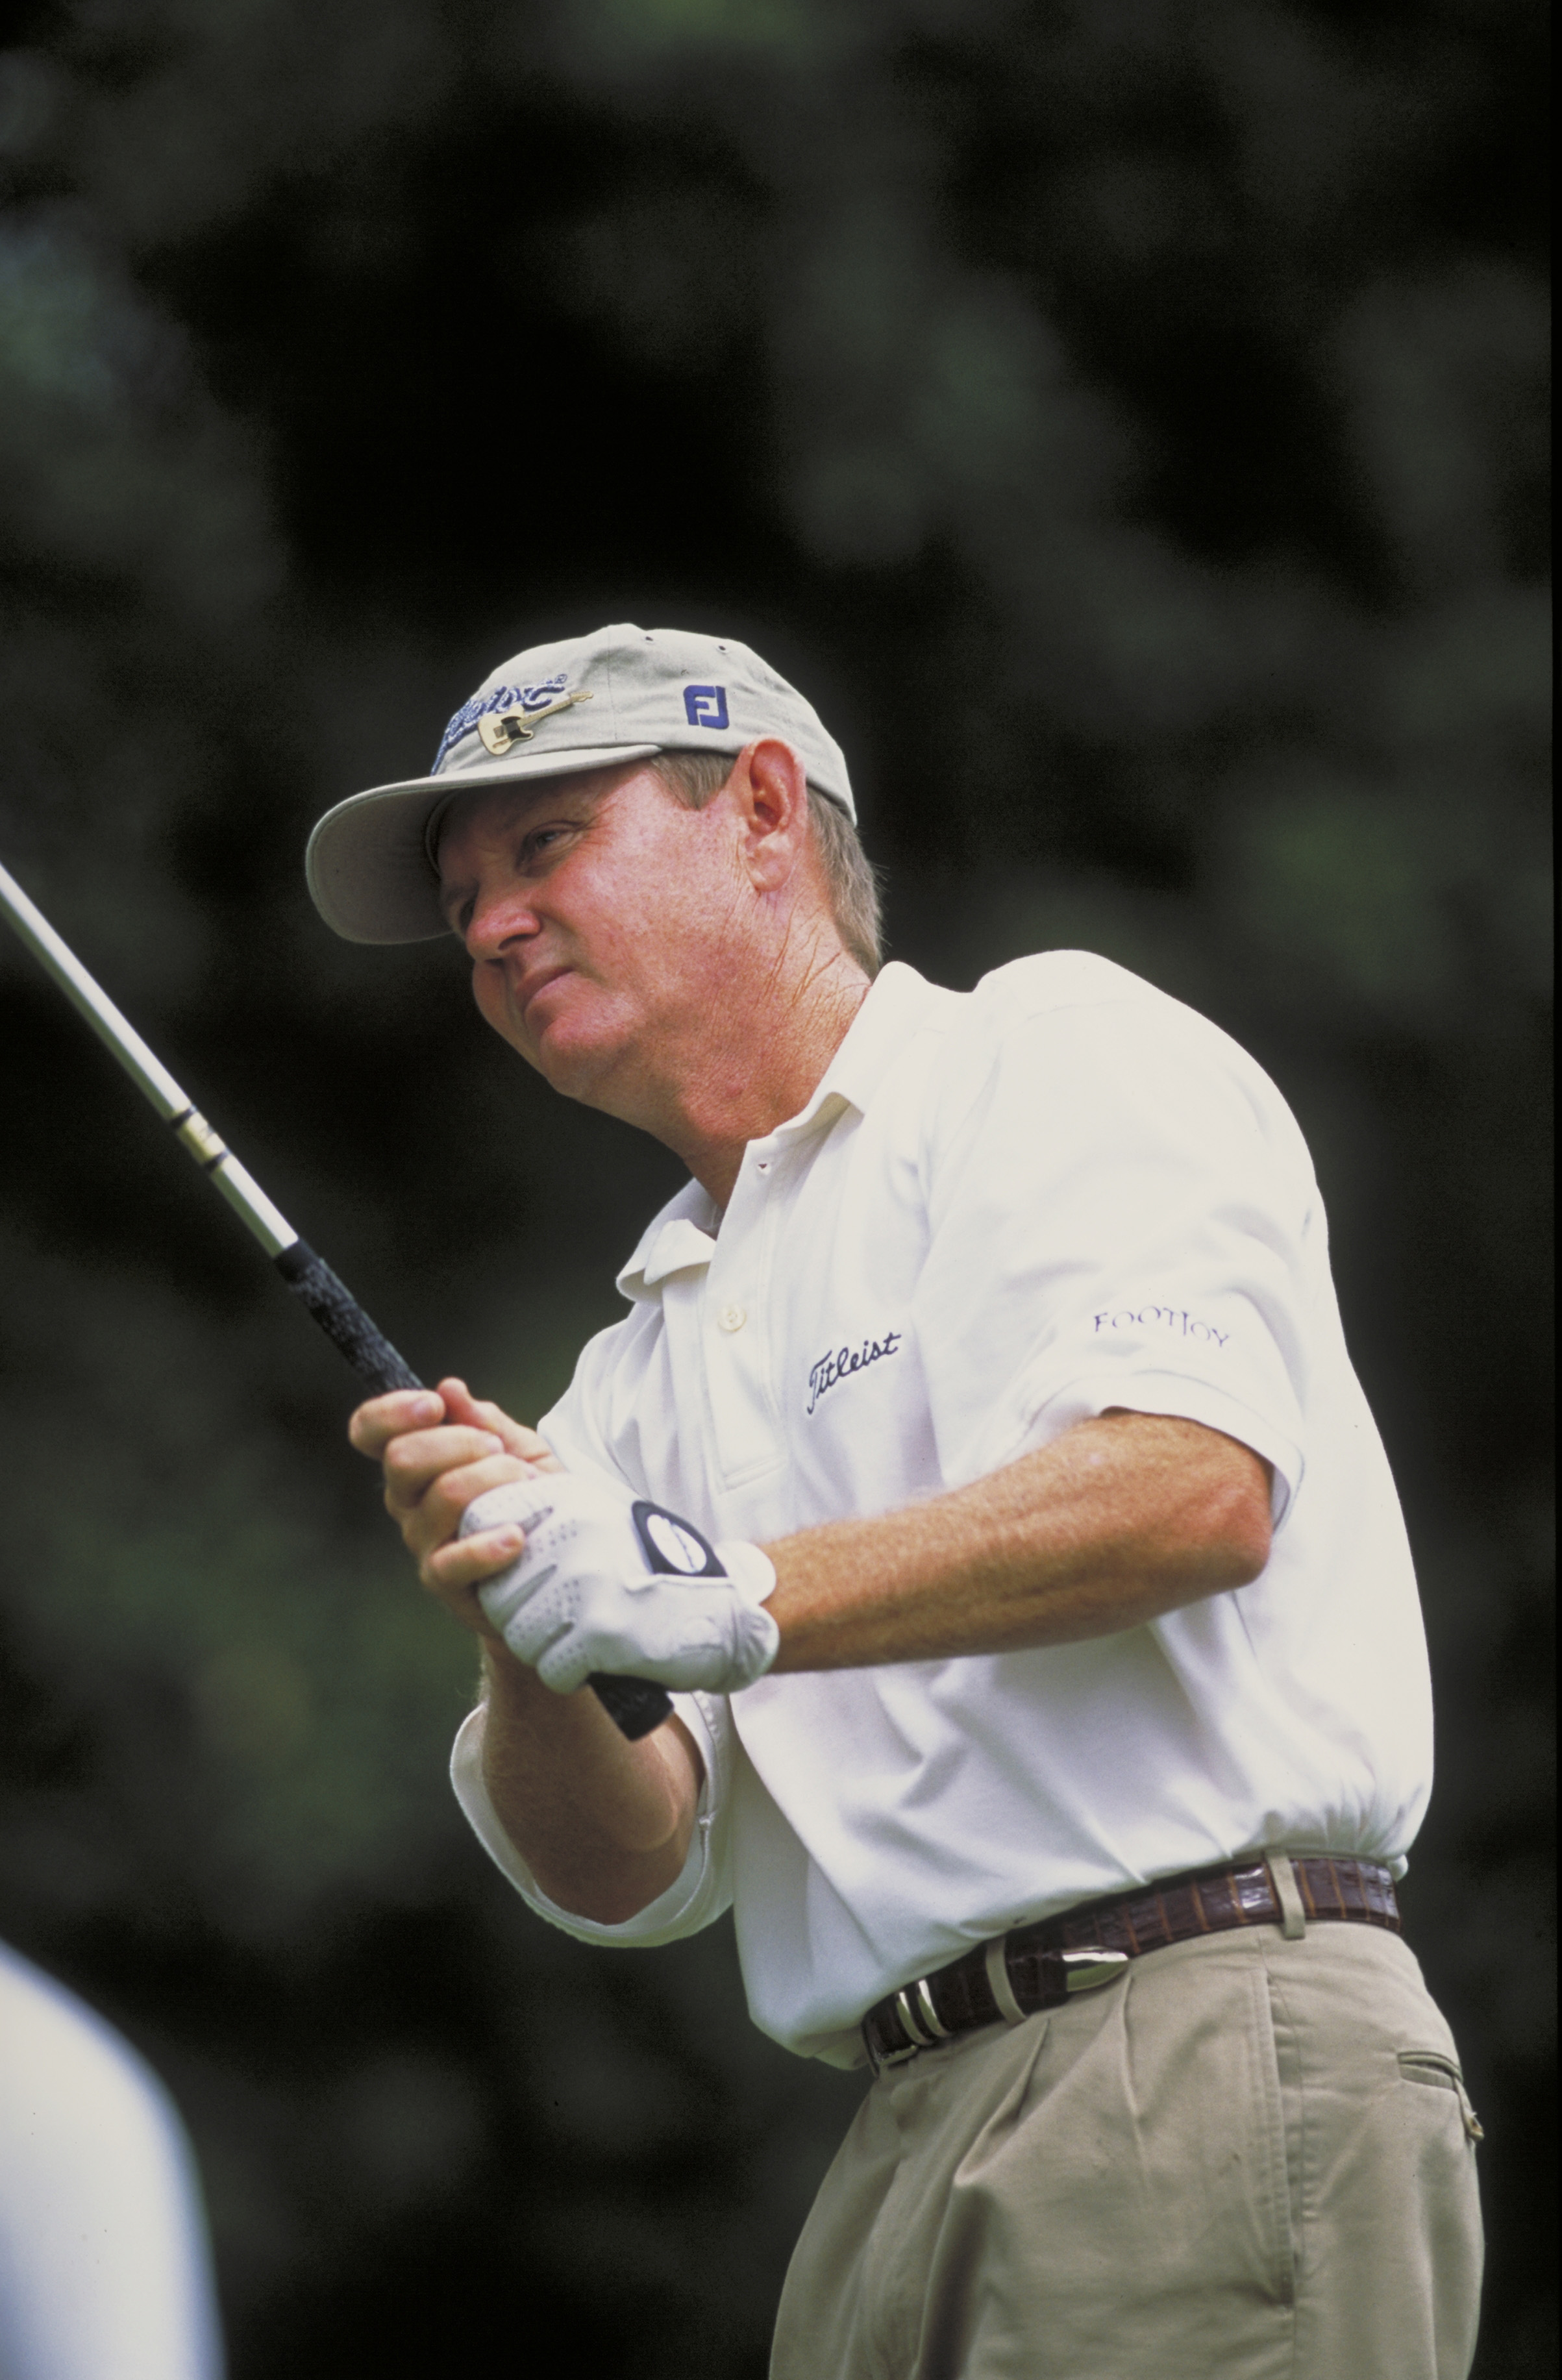 Former PGA Tour player Larry Rinker discusses his college days, thoughts on match play and what he would change if he were the PGA Tour commissioner.